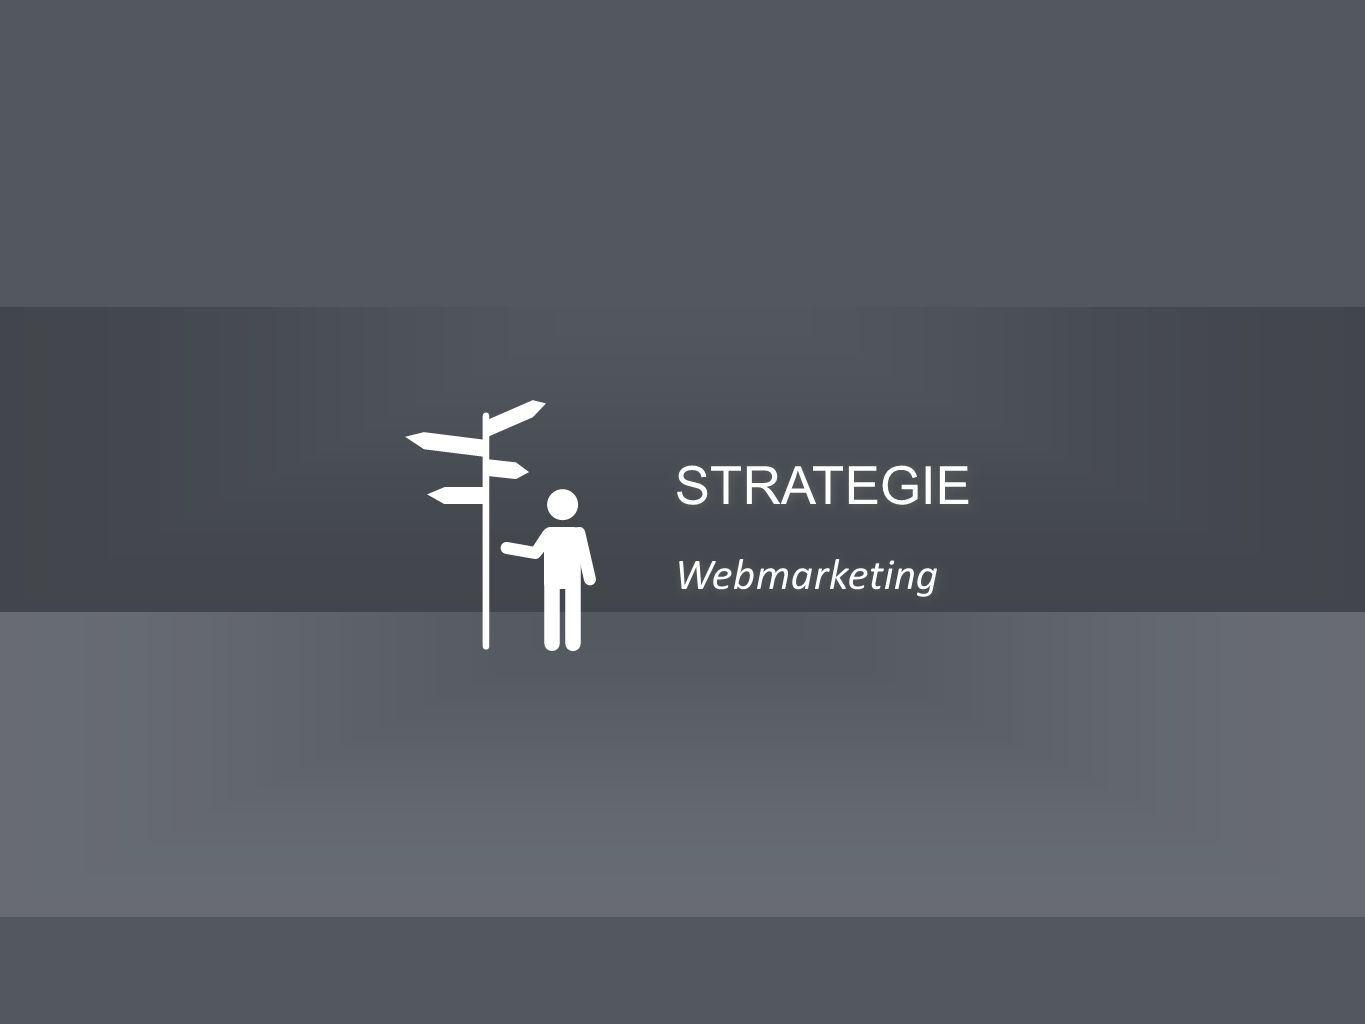 Estated www.gsite.ch STRATEGIE WEBMARKETING Analisi e gestione del budget 11 SEM SEO SOCIAL ADV LOCALE